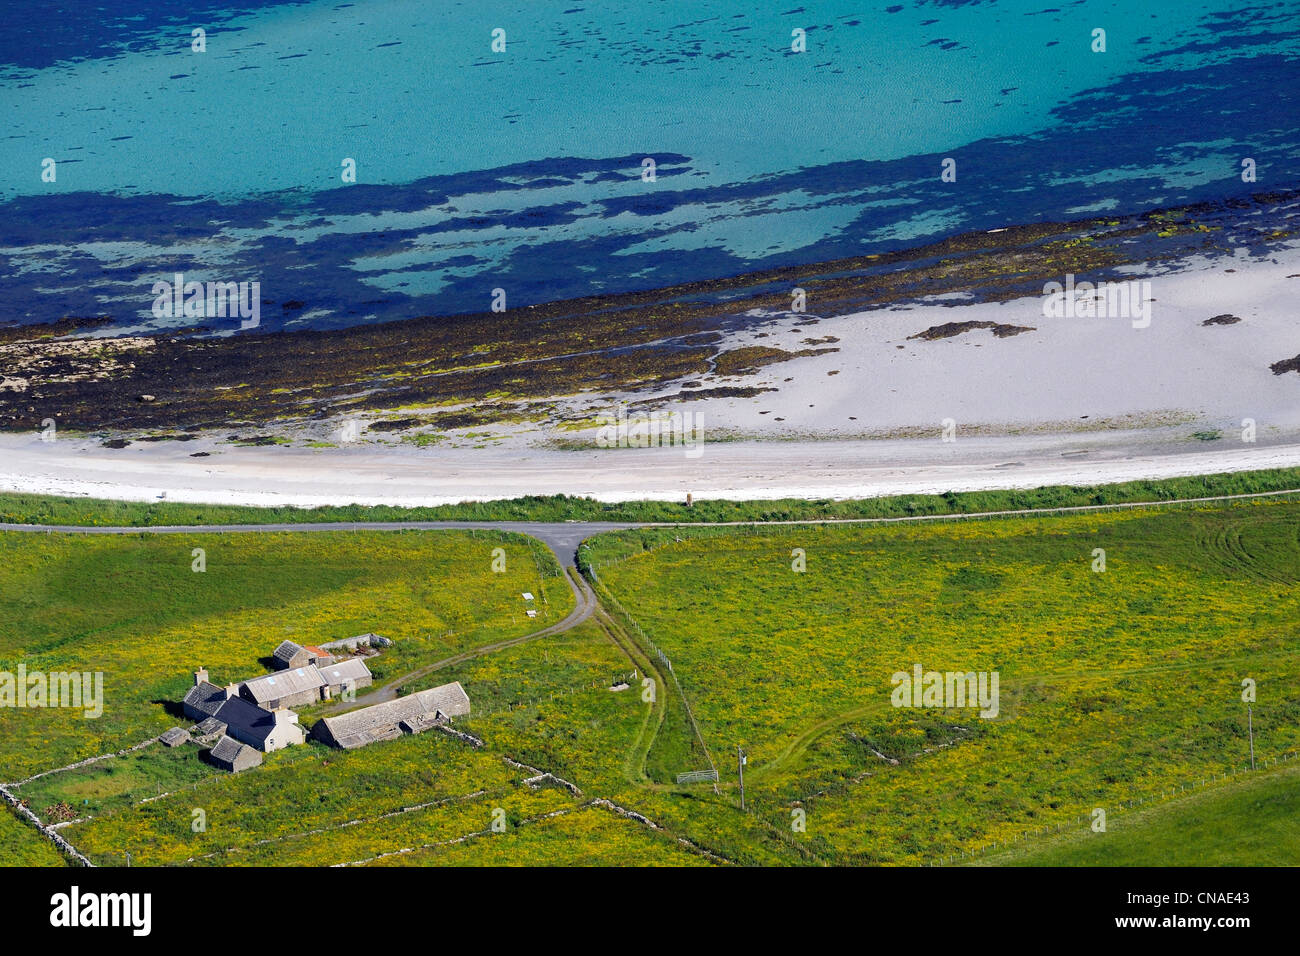 United Kingdom, Scotland, Orkney Islands, Papa Westray Island, farm by the sea and the beach (aerial view) - Stock Image